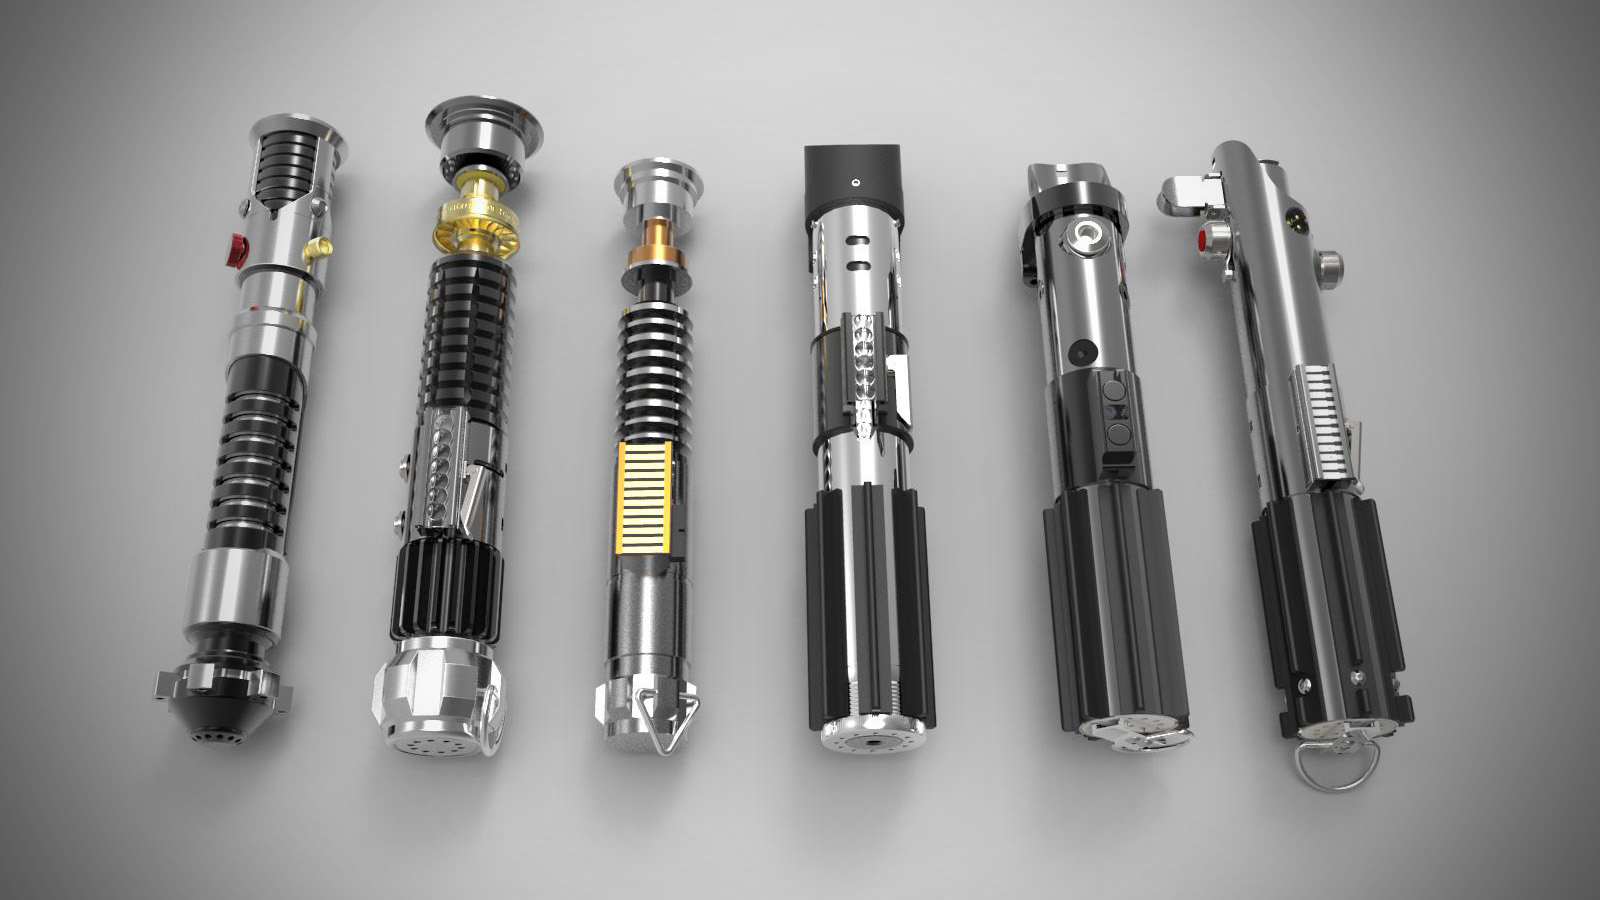 Luke Skywalker's lightsaber can be seen at the far right while Obi-Wan Kenobi's lightsaber is second from the left